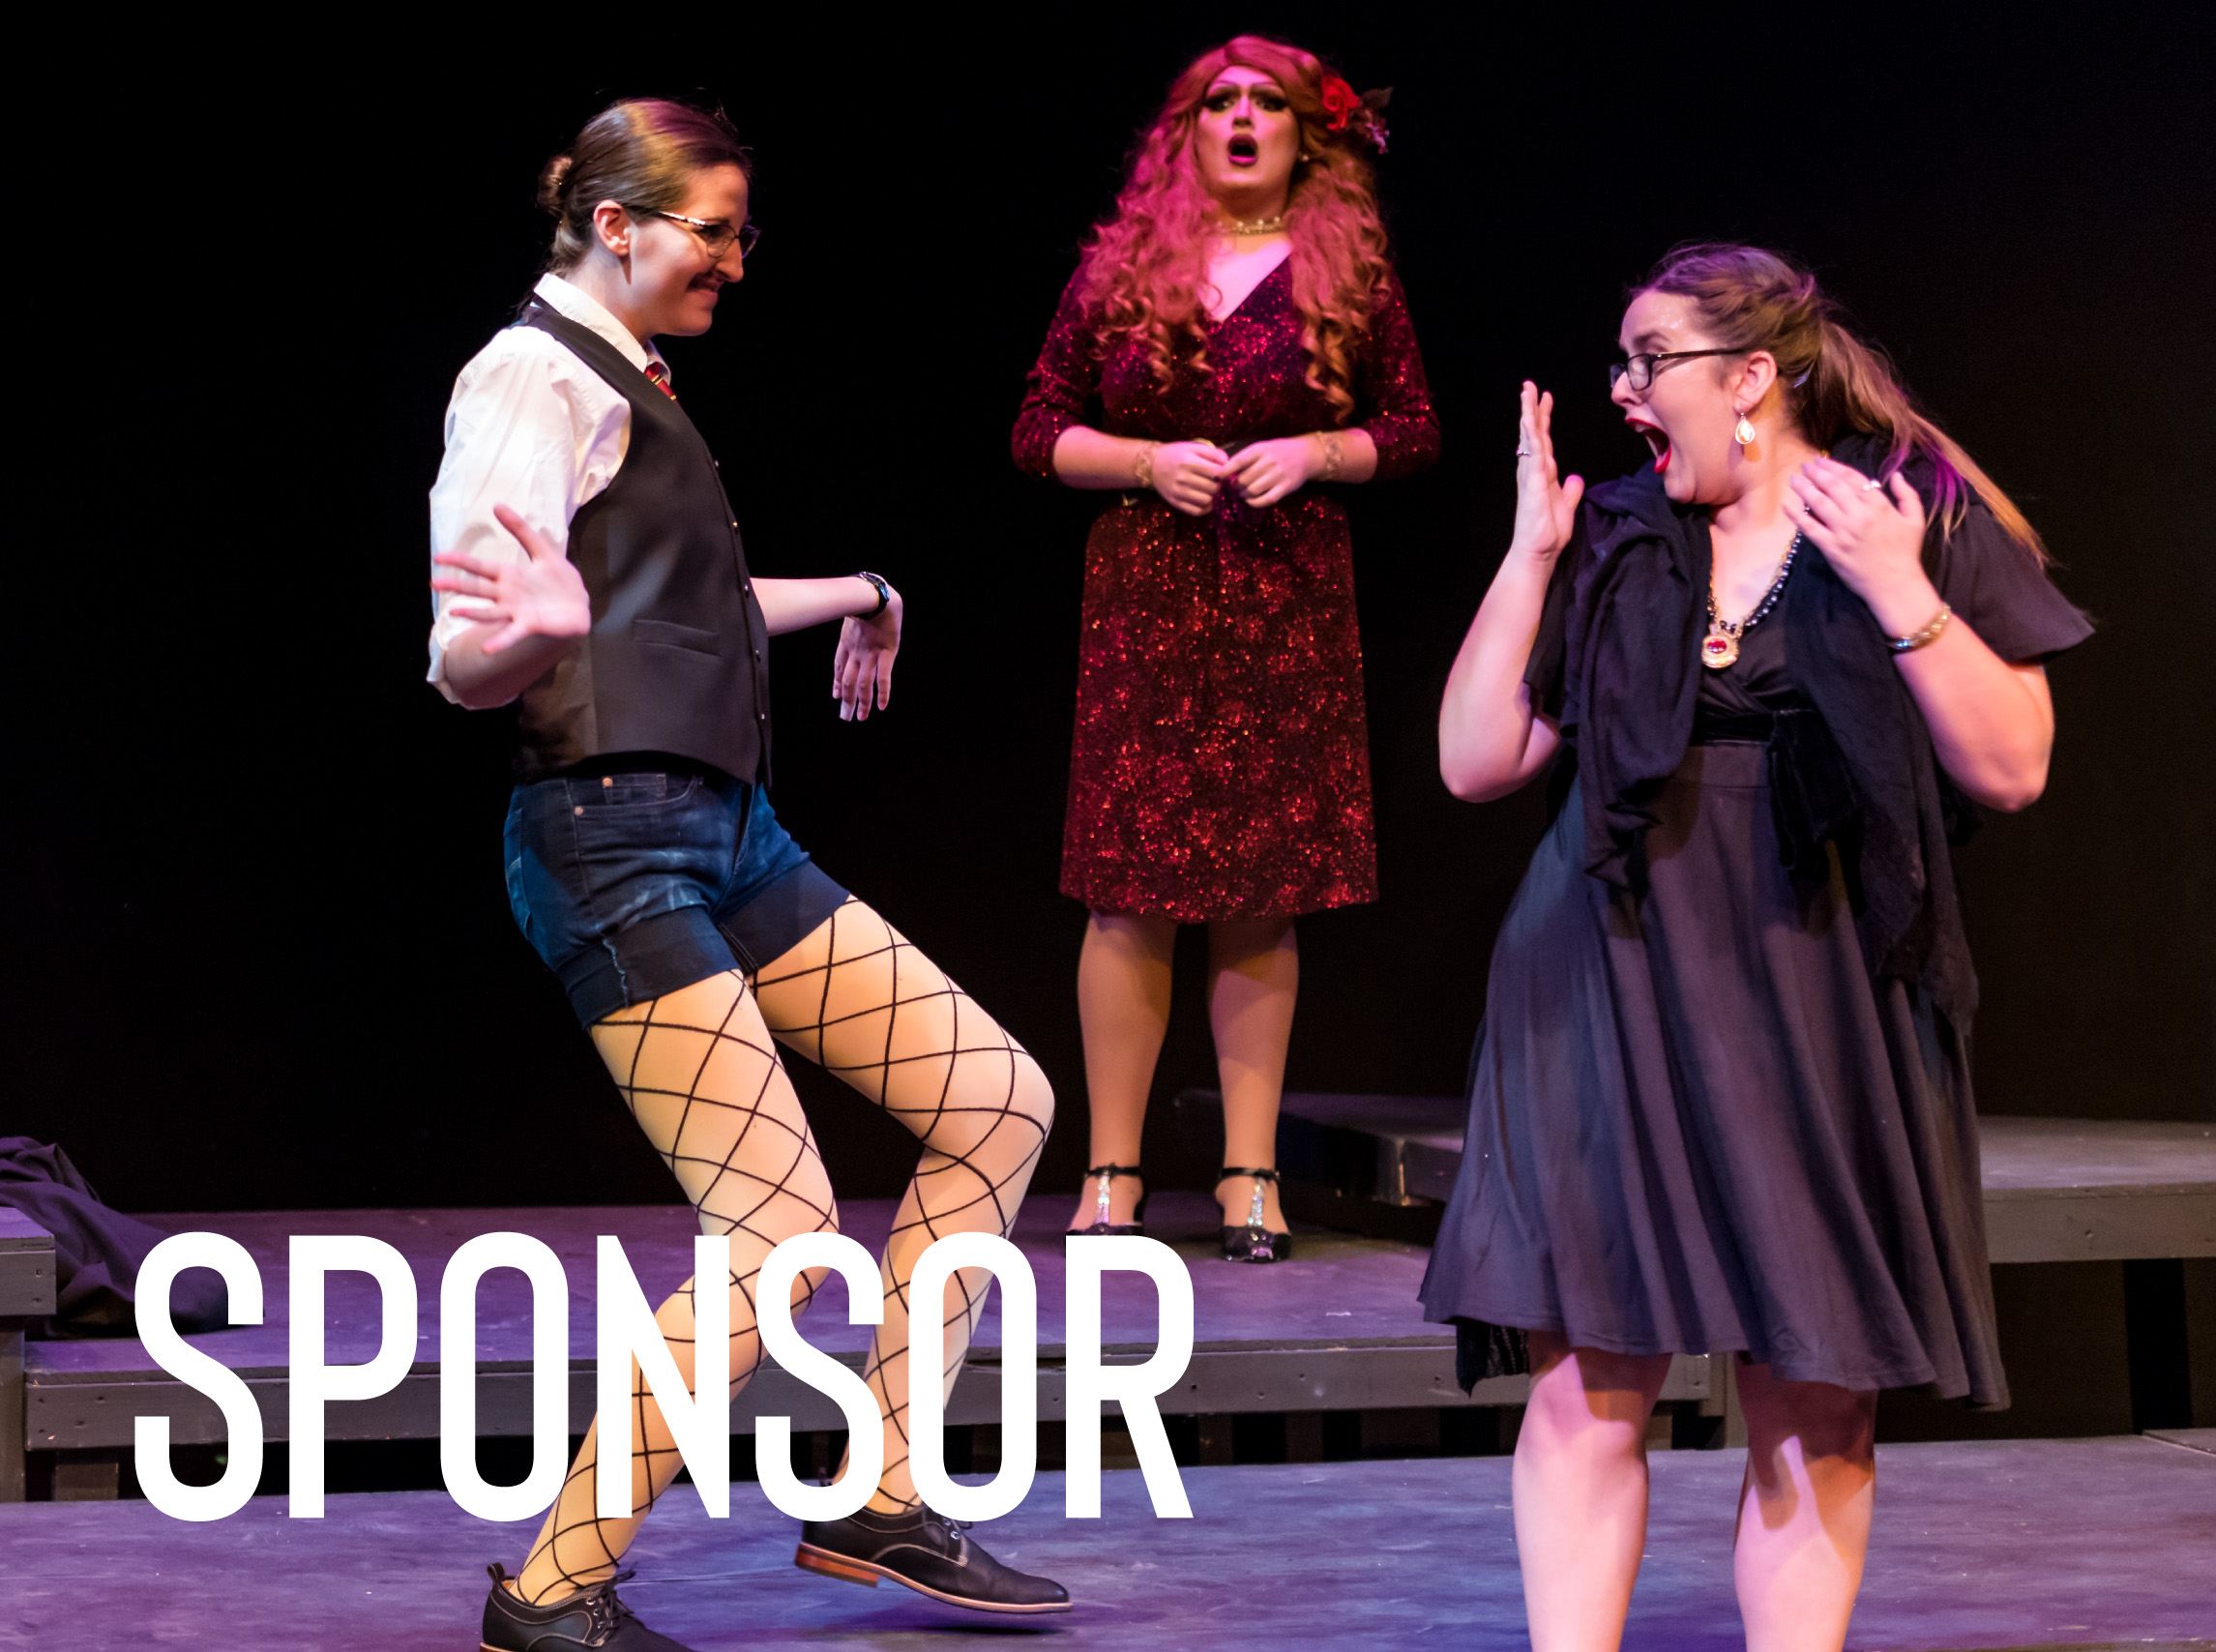 become one of our community partners - Sponsorship of Huntsville Shakespeare is the perfect partnership for your company or organization.Benefits of sponsorship include:-special recognition at all performances-listing on our website-complimentary tickets